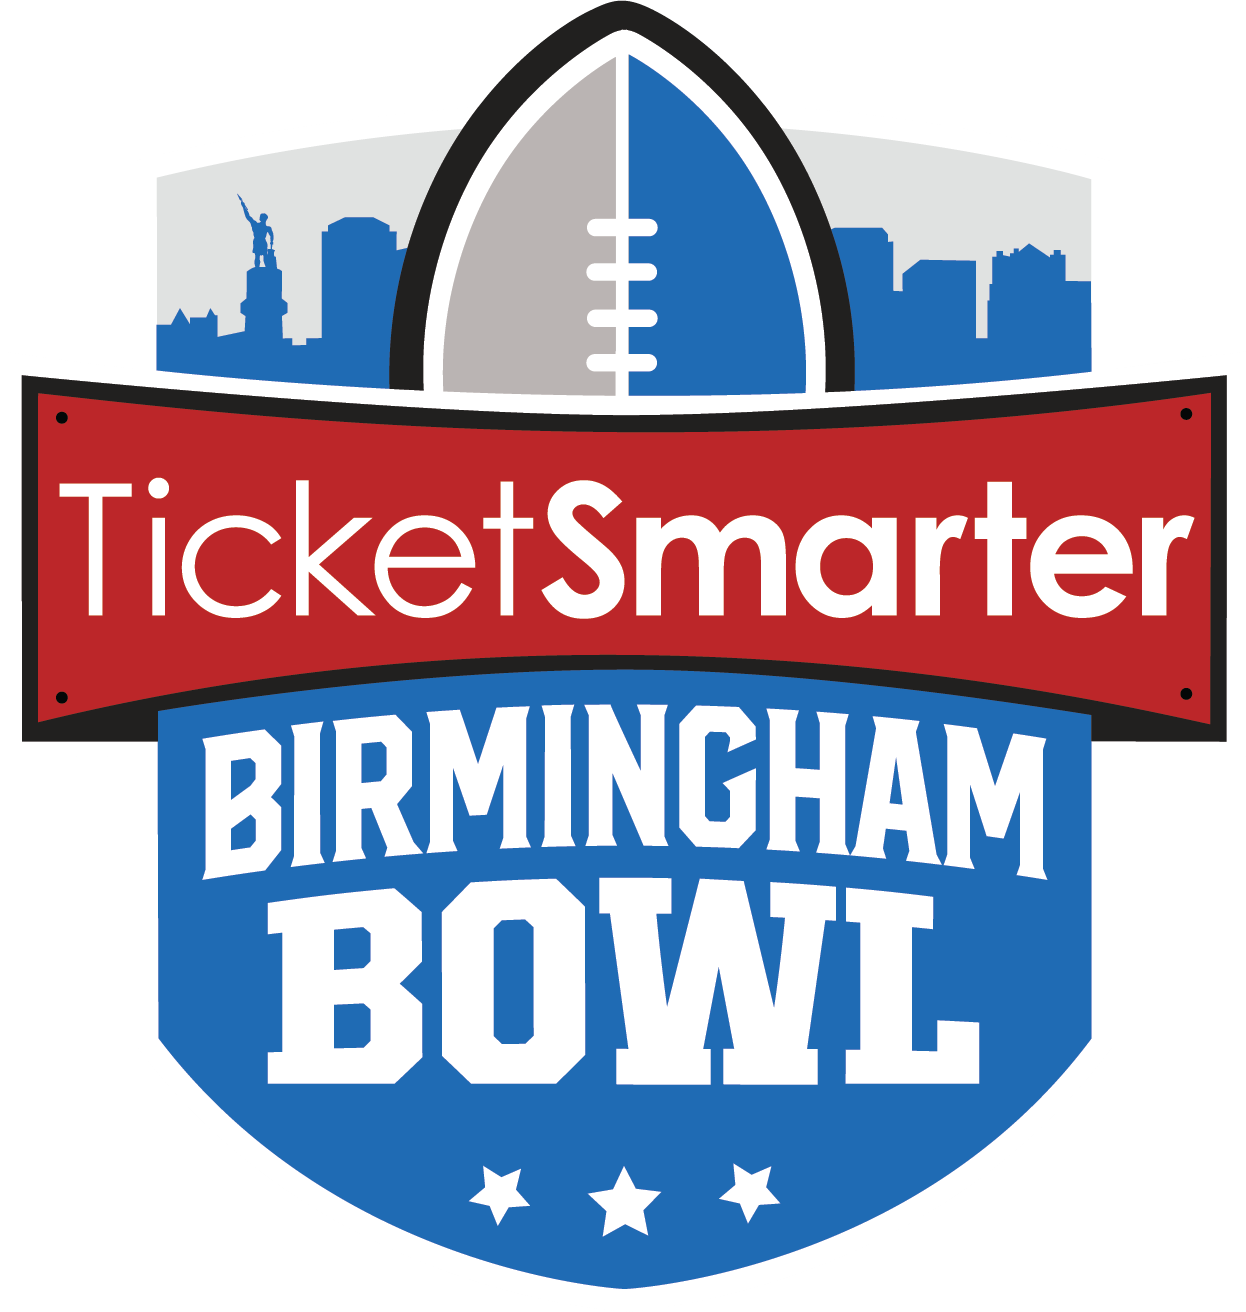 TicketSmarter Birmingham Bowl